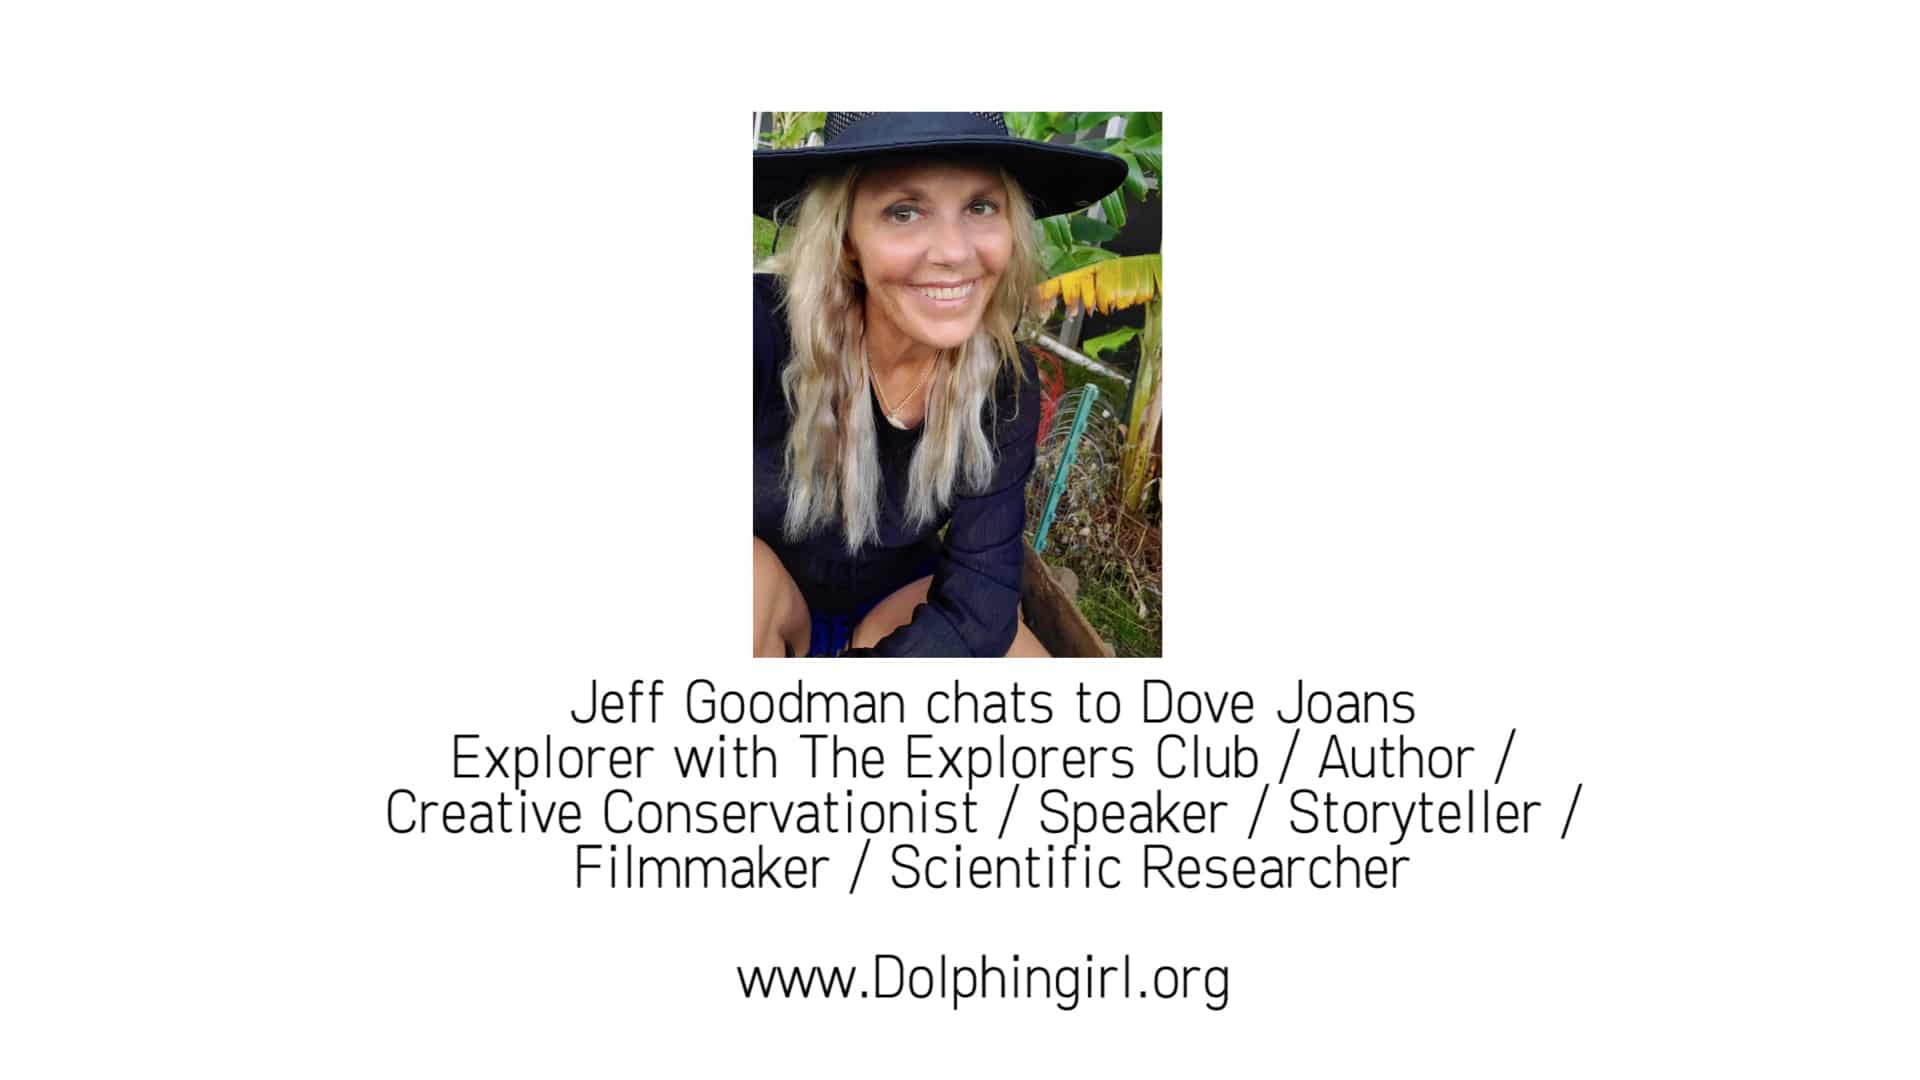 Dove Joans Zoom interview with Jeff Goodman opeing card